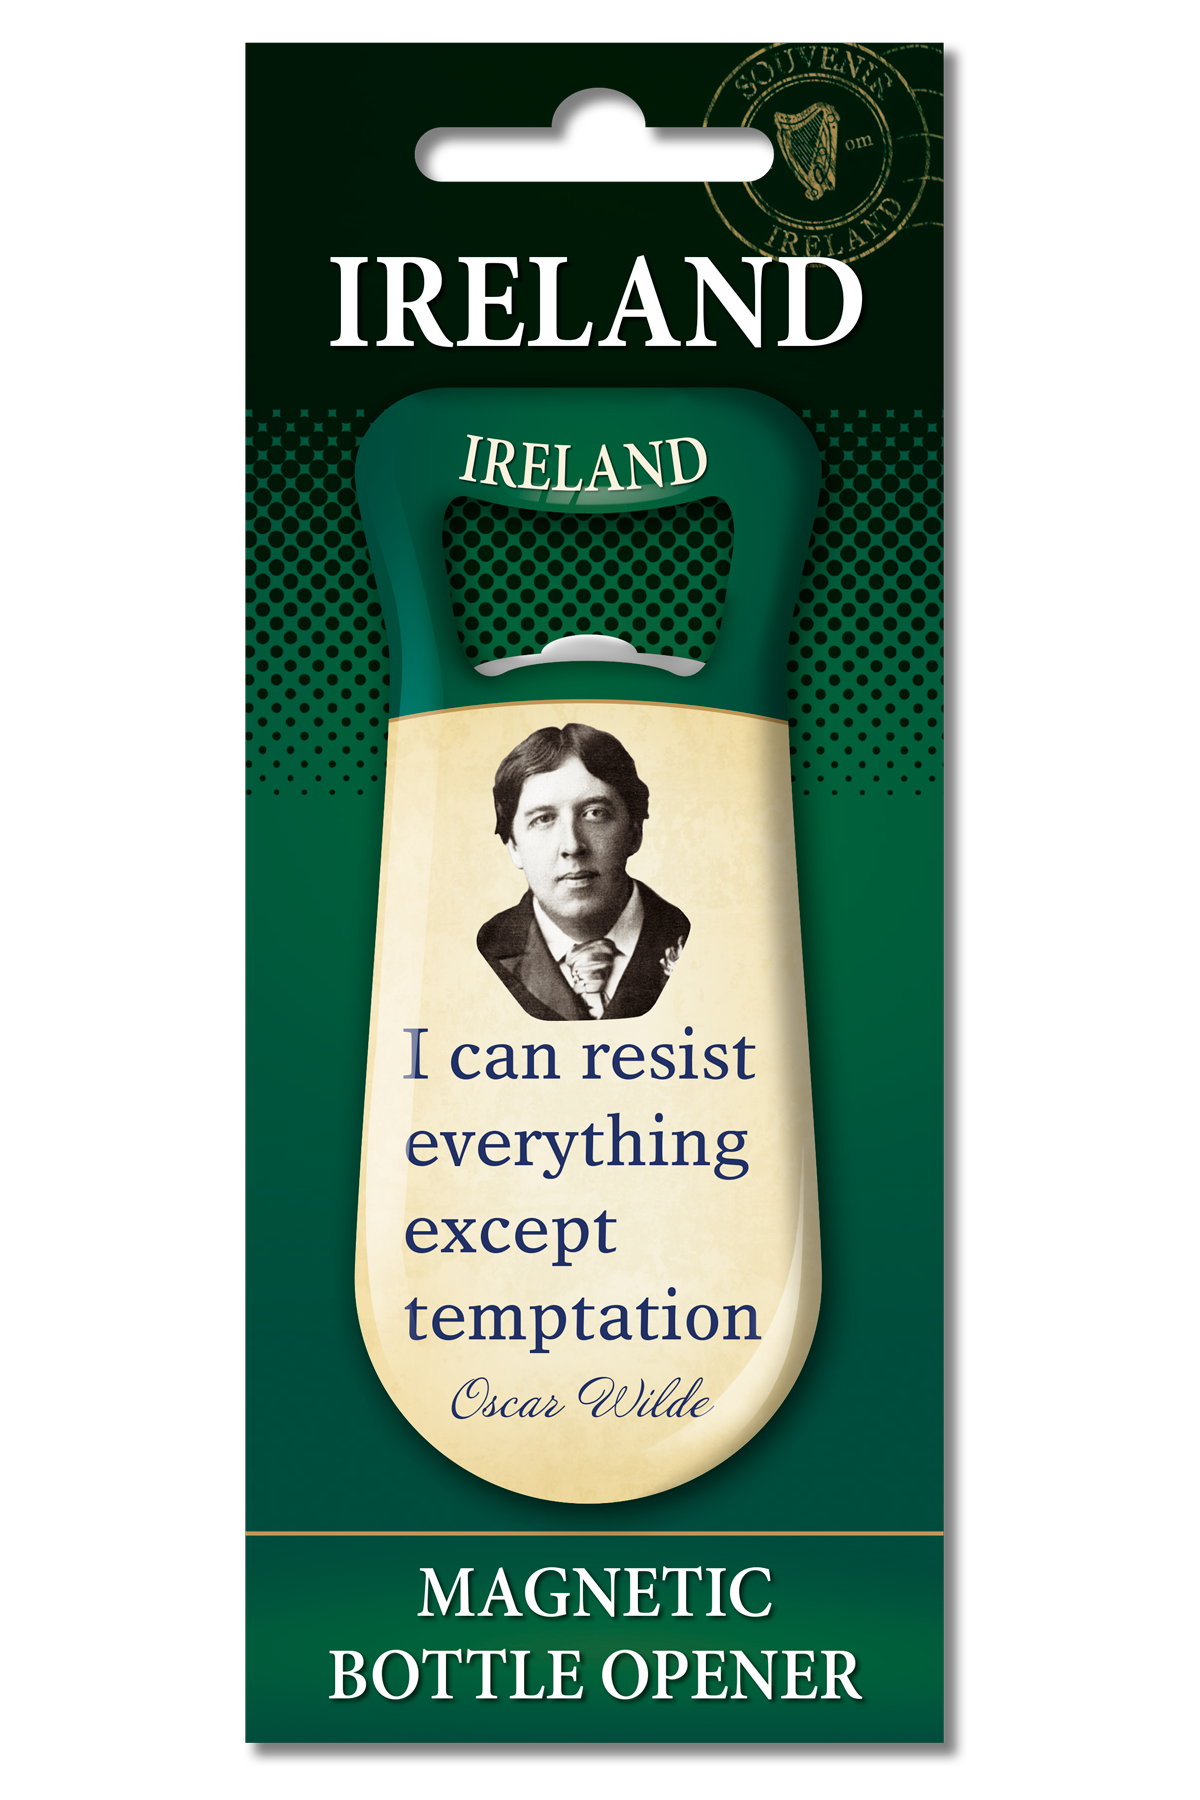 Oscar Wilde Bottle Opener - Fridge Magnet